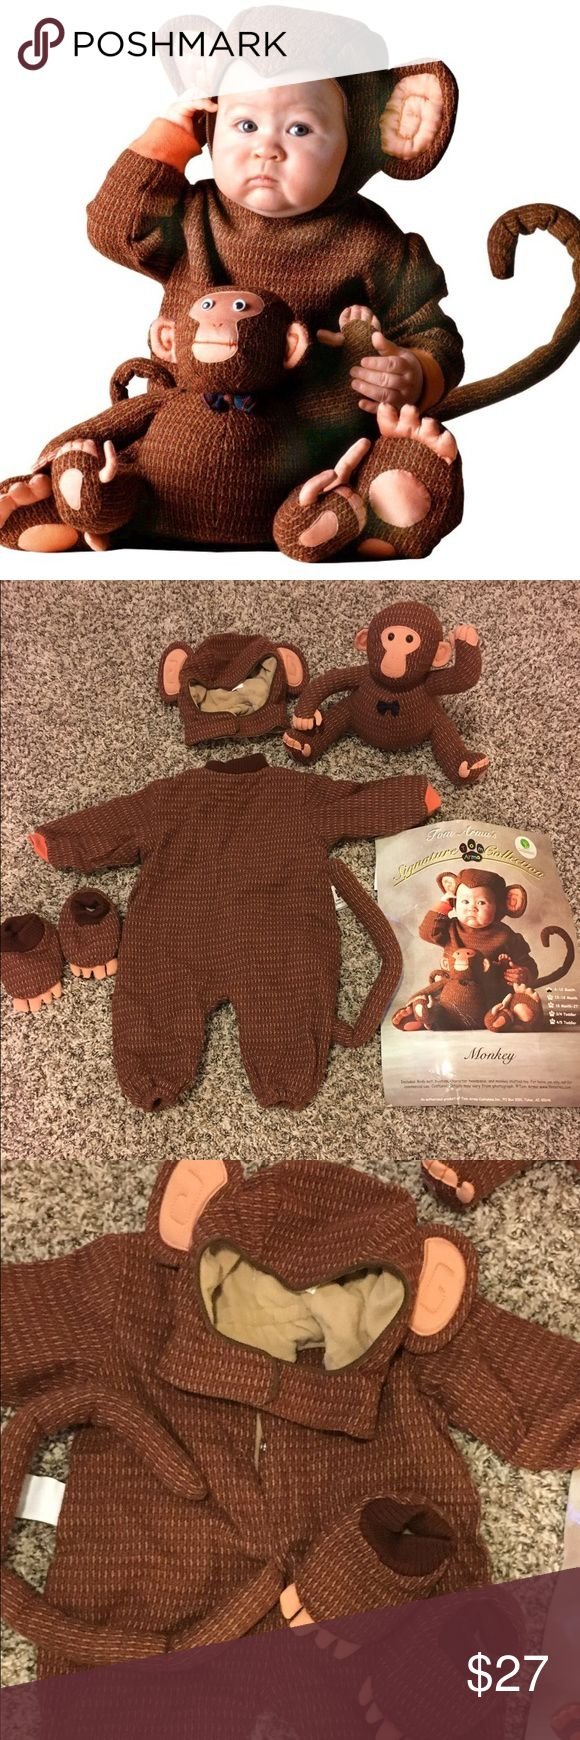 Tom Arma Monkey Costume Tom Arma Monkey costume with stuffed monkey. Such a cute costume. Worn for a few hours. Costumes Halloween                                                                                                                                                                                 More